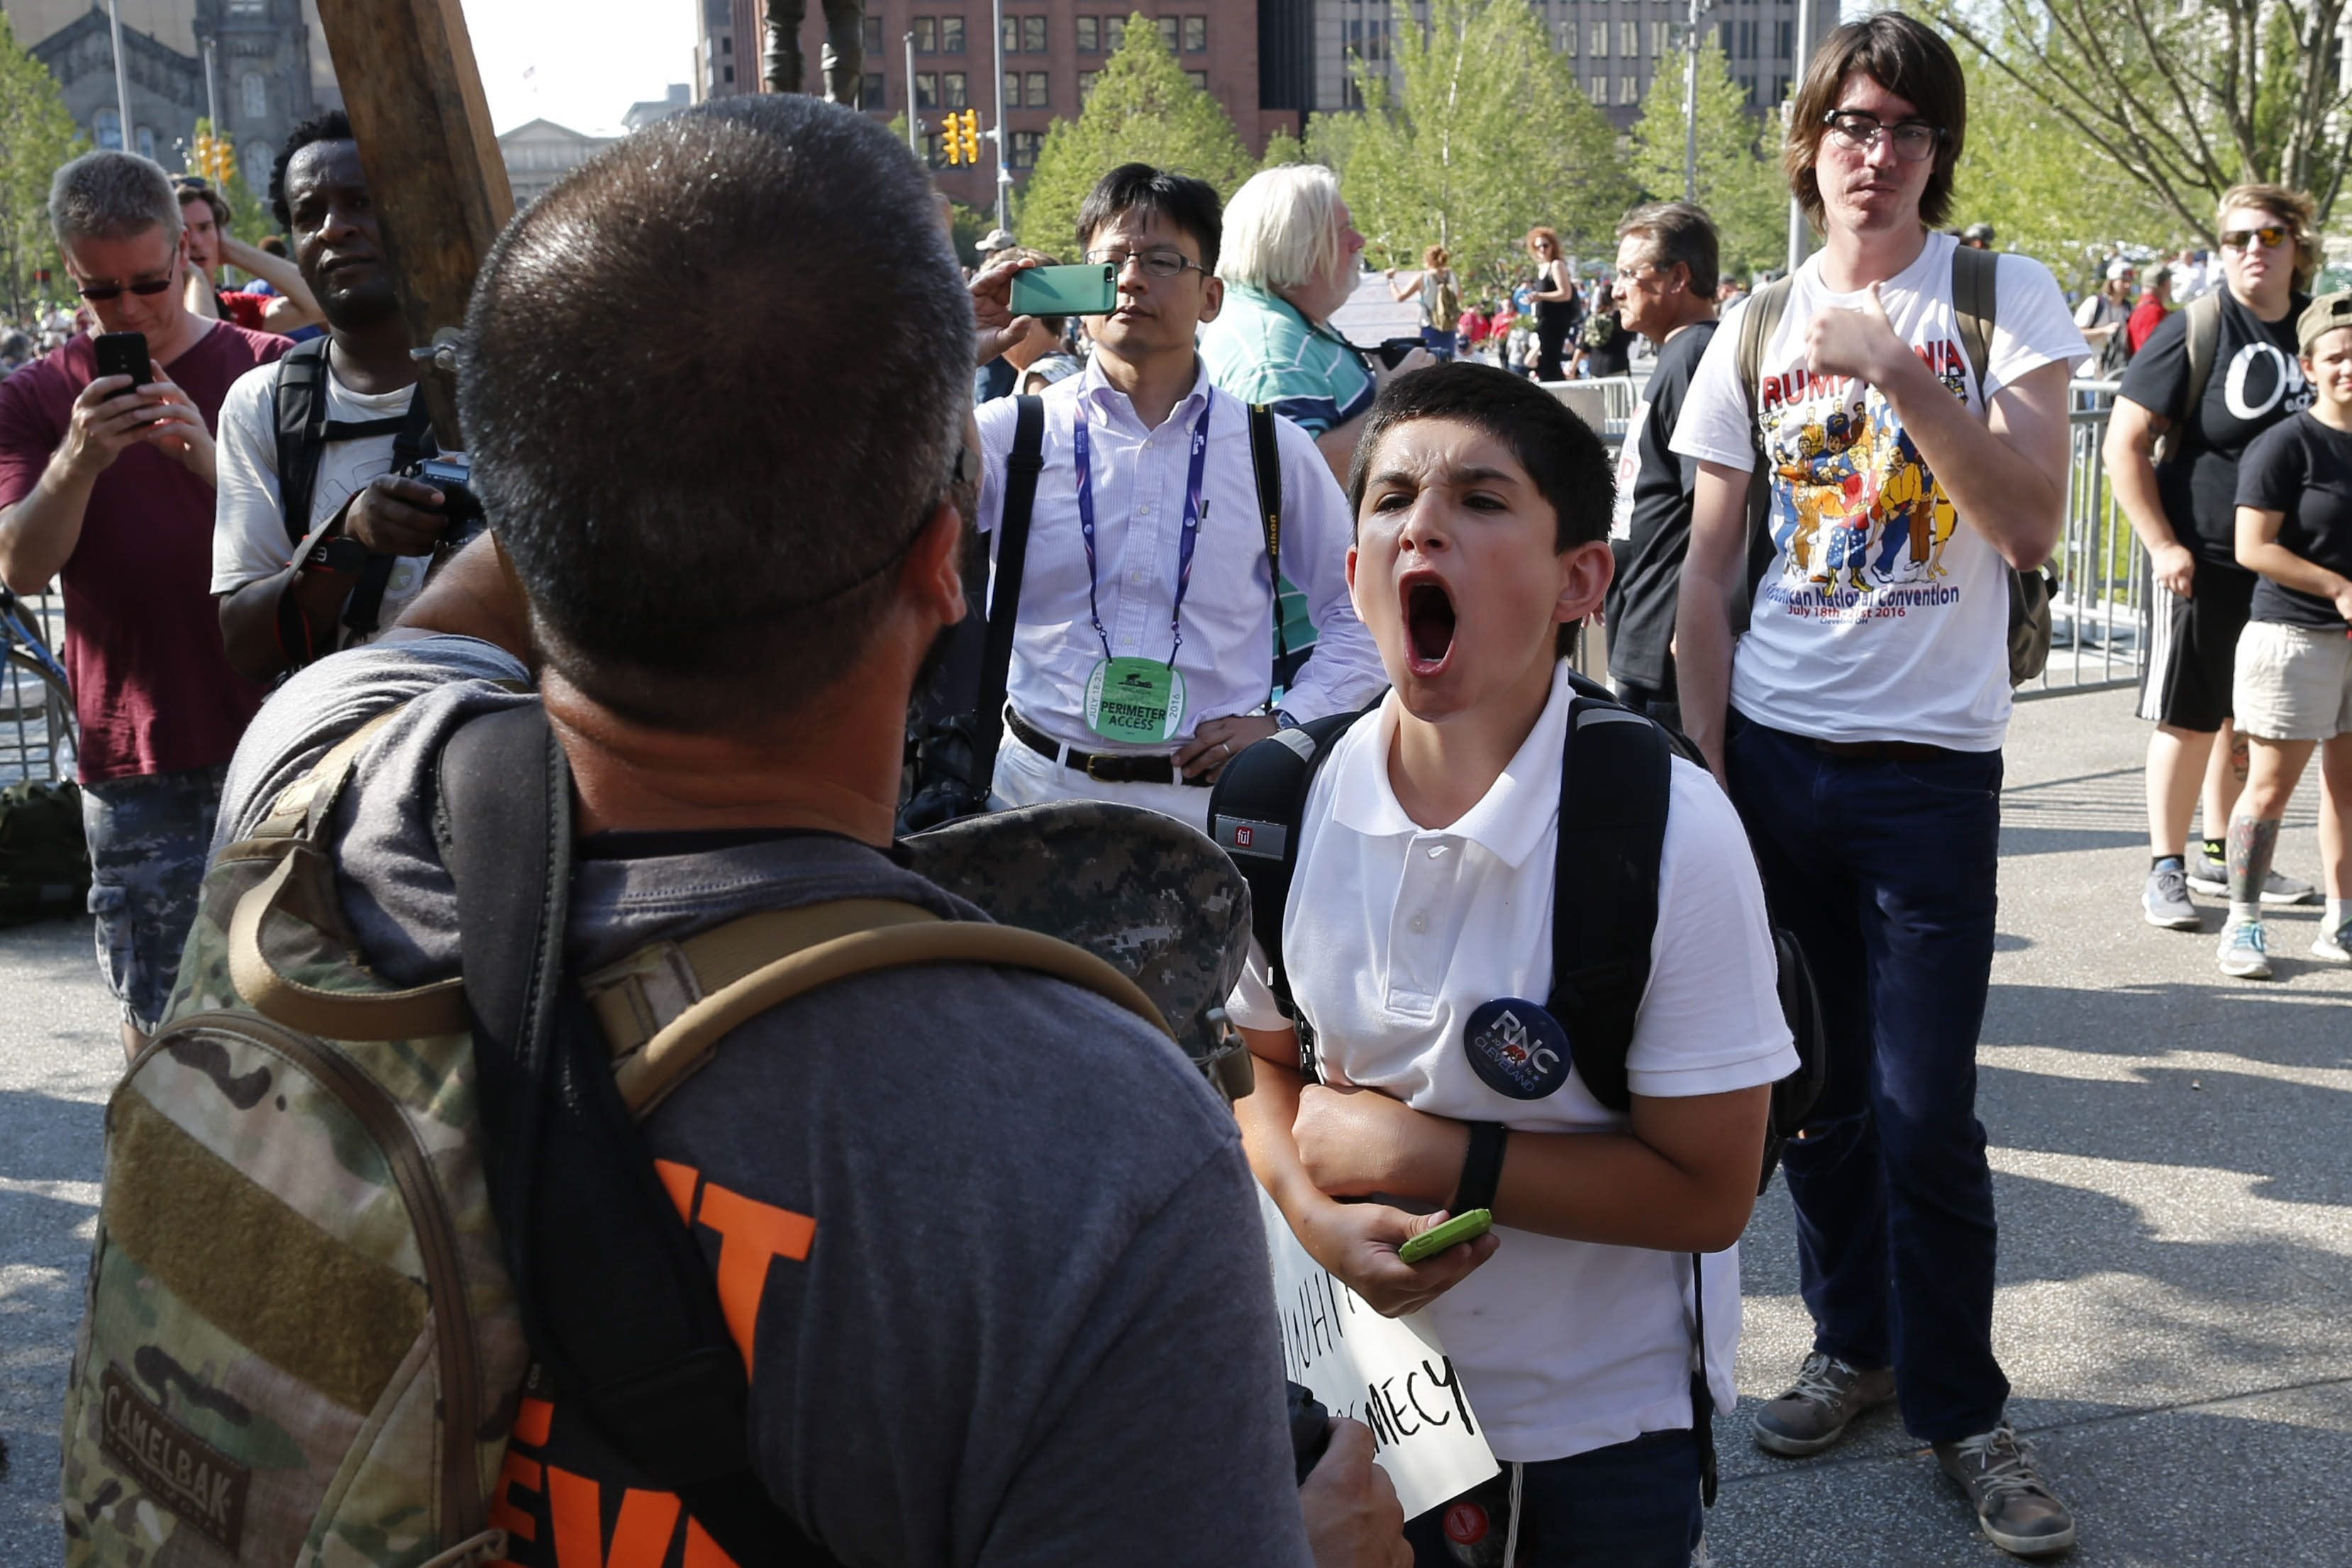 Ranan Steiger, 16, of Cleveland, gets in the face of a Christian protestor in Cleveland's Public Square on July 19. (Derek Gee/Buffalo News)